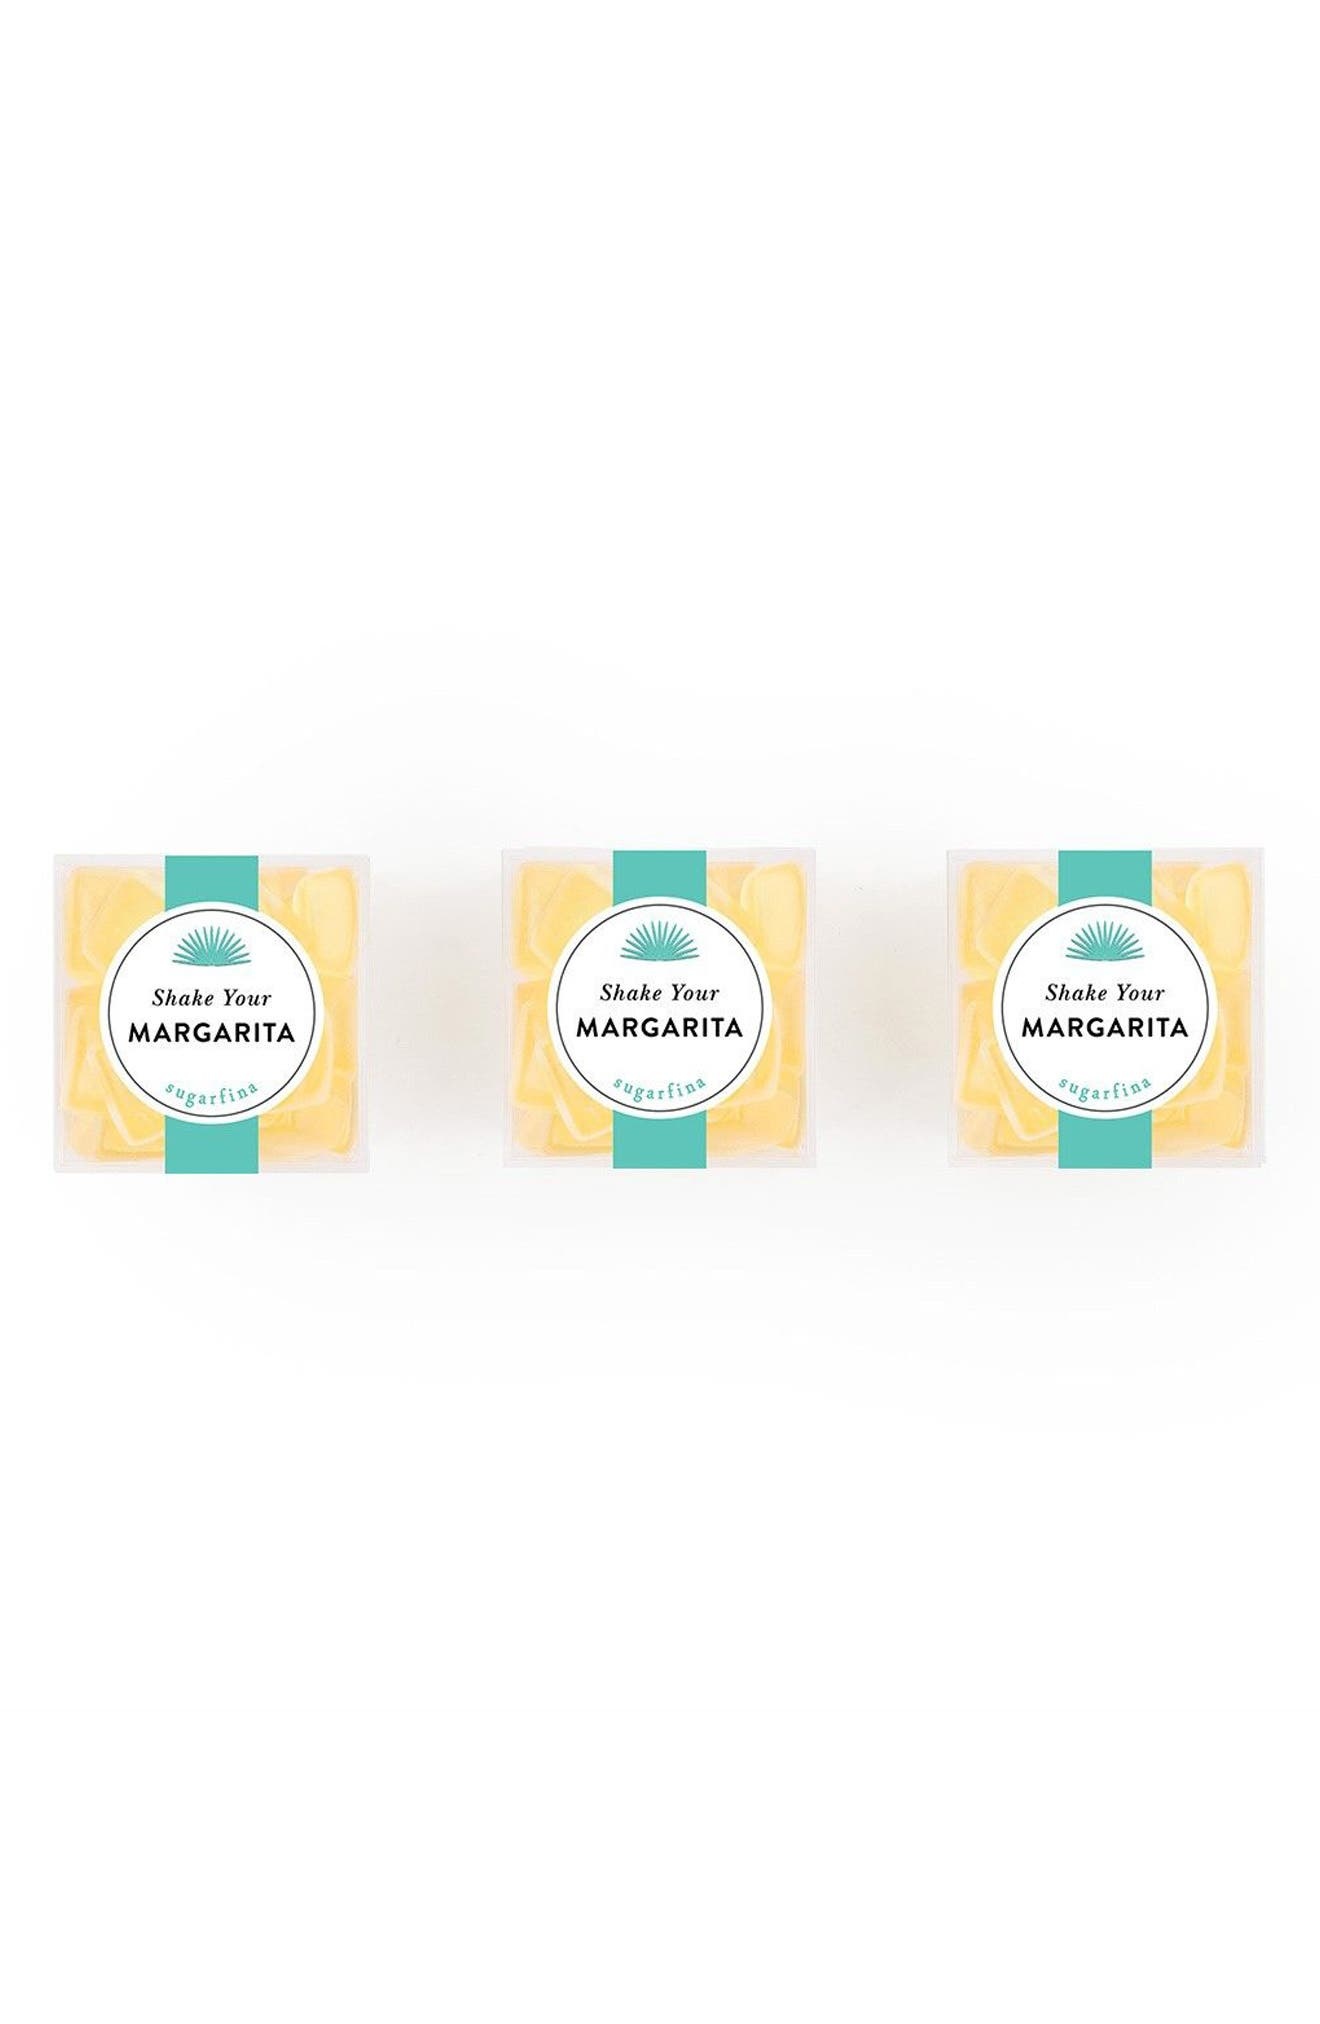 Alternate Image 1 Selected - sugarfina Casamigos - Shake Your Margarita Tequila Gummy Gift Set